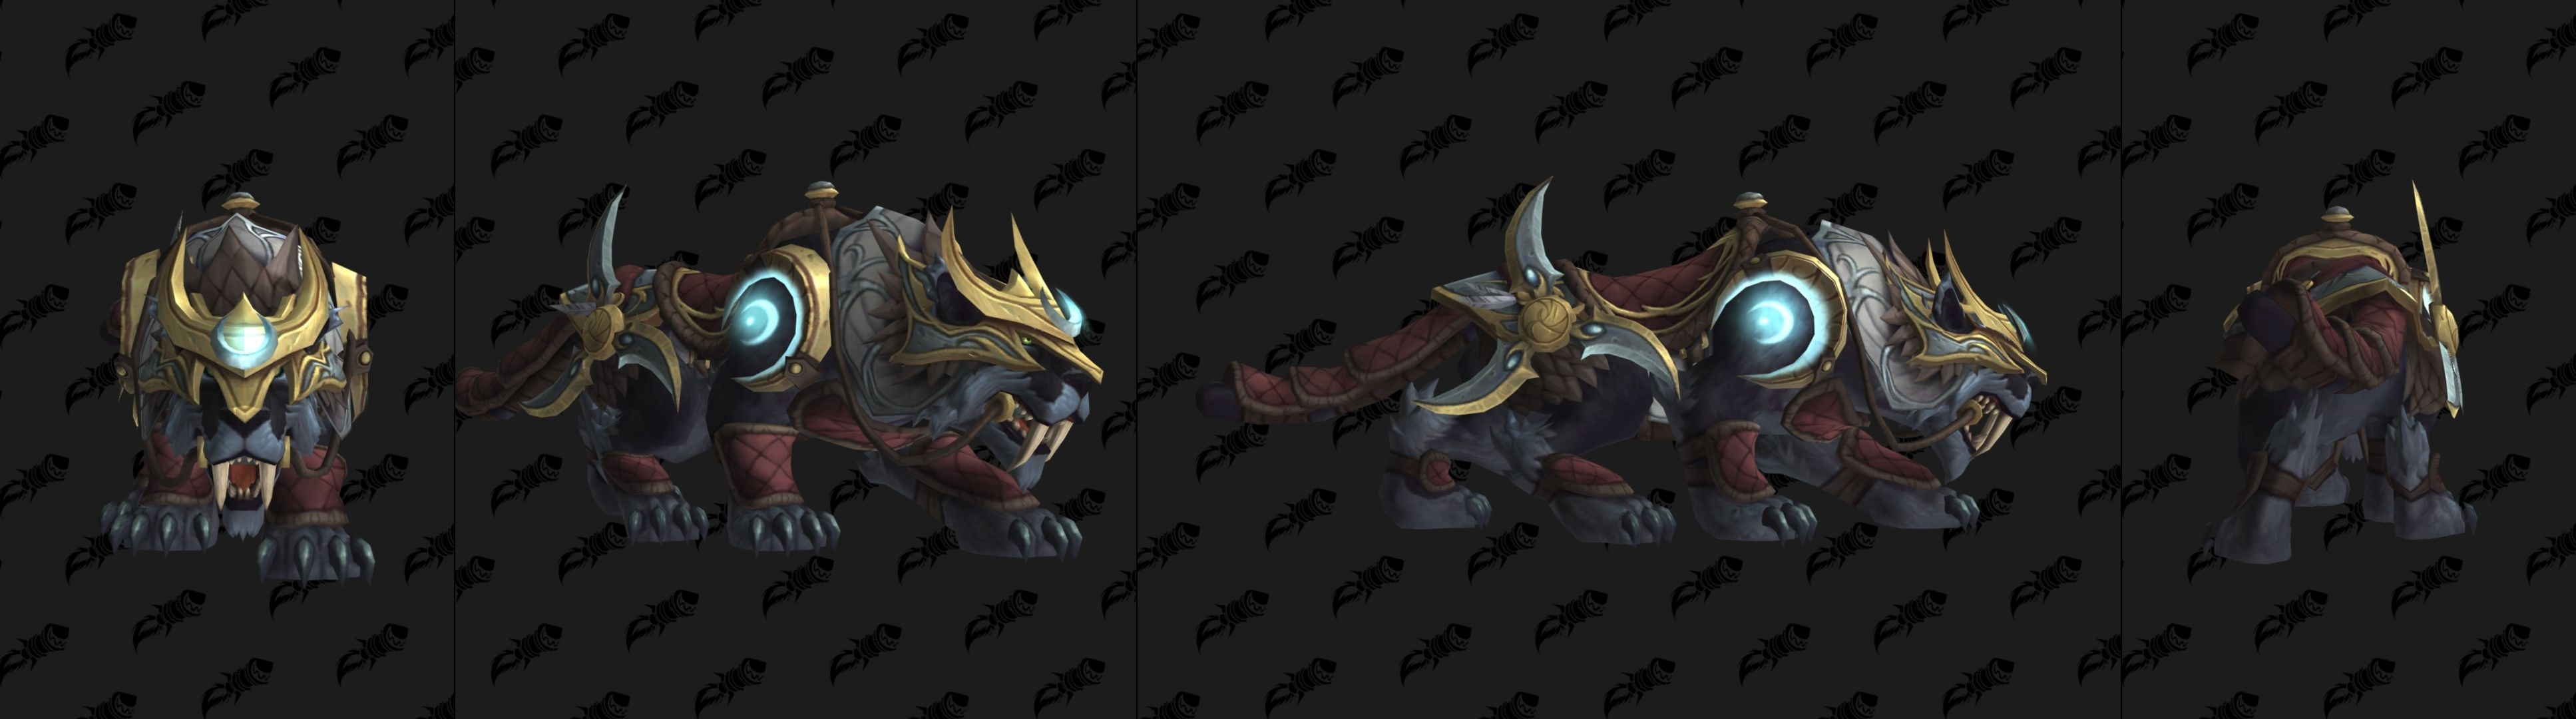 Patch 8 1 PTR Build 28202 - New Mounts Gilded Edition G M O D